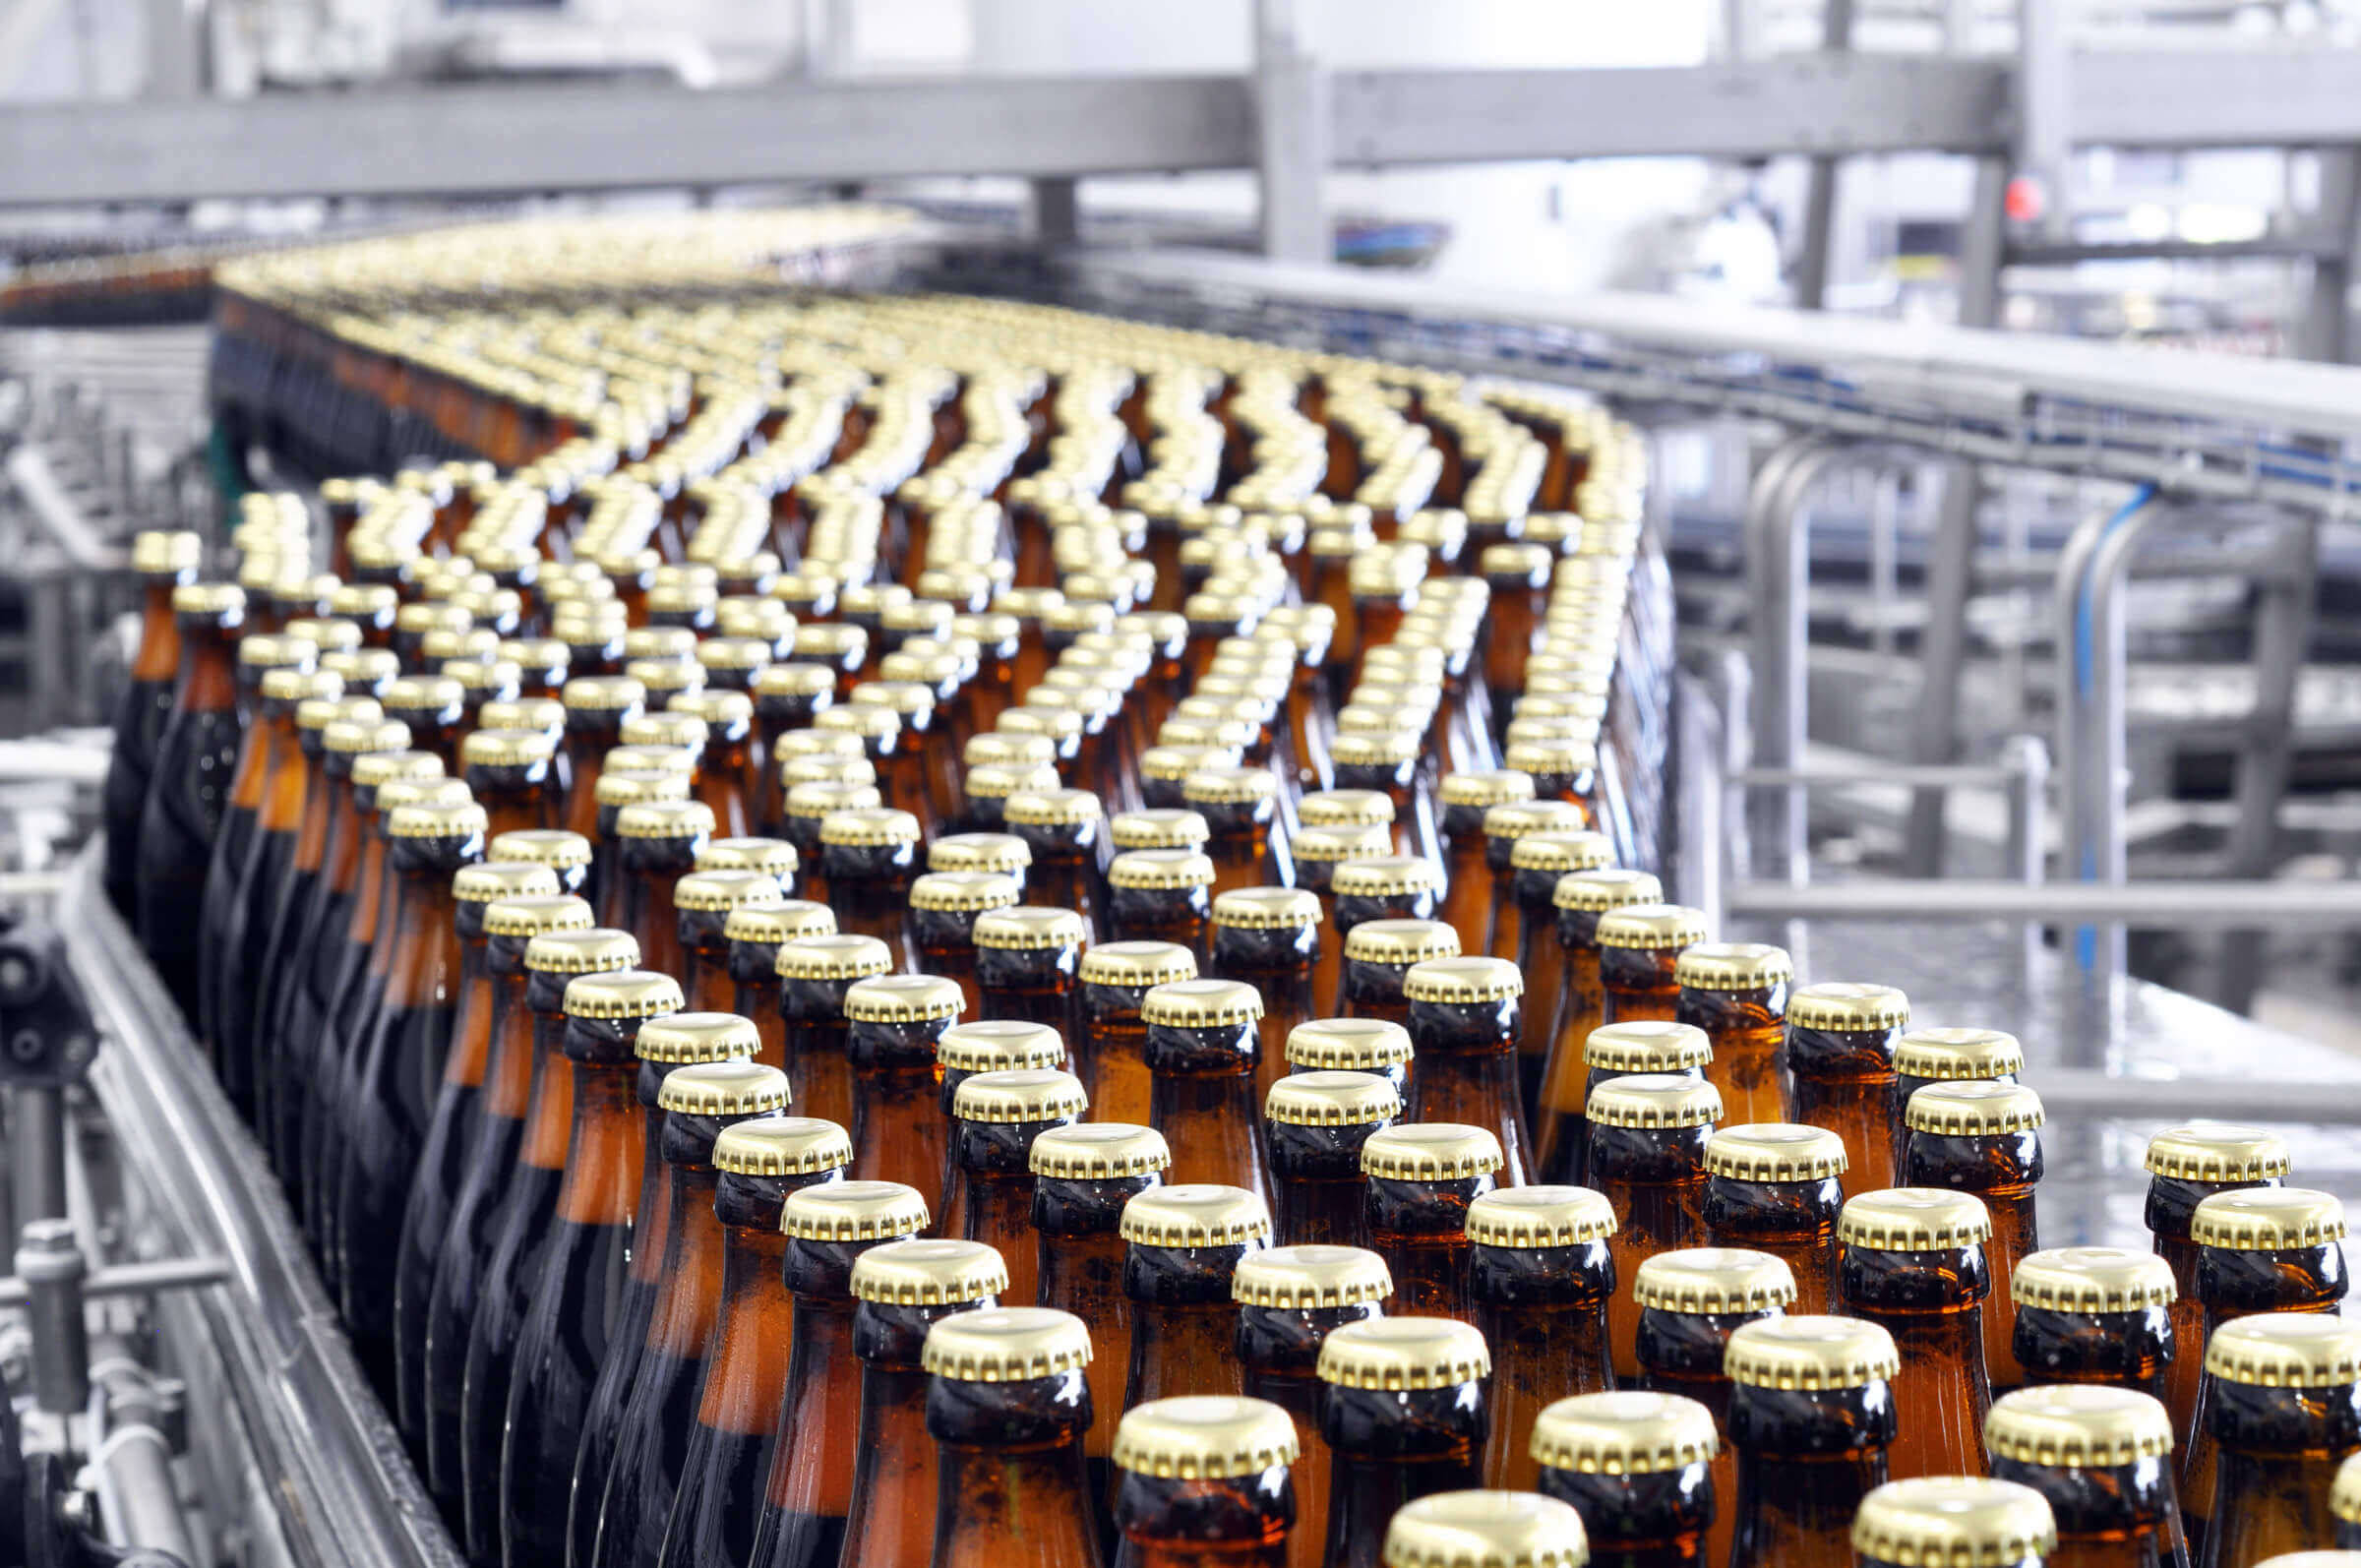 Beer bottles without labels after bottling process in brewery